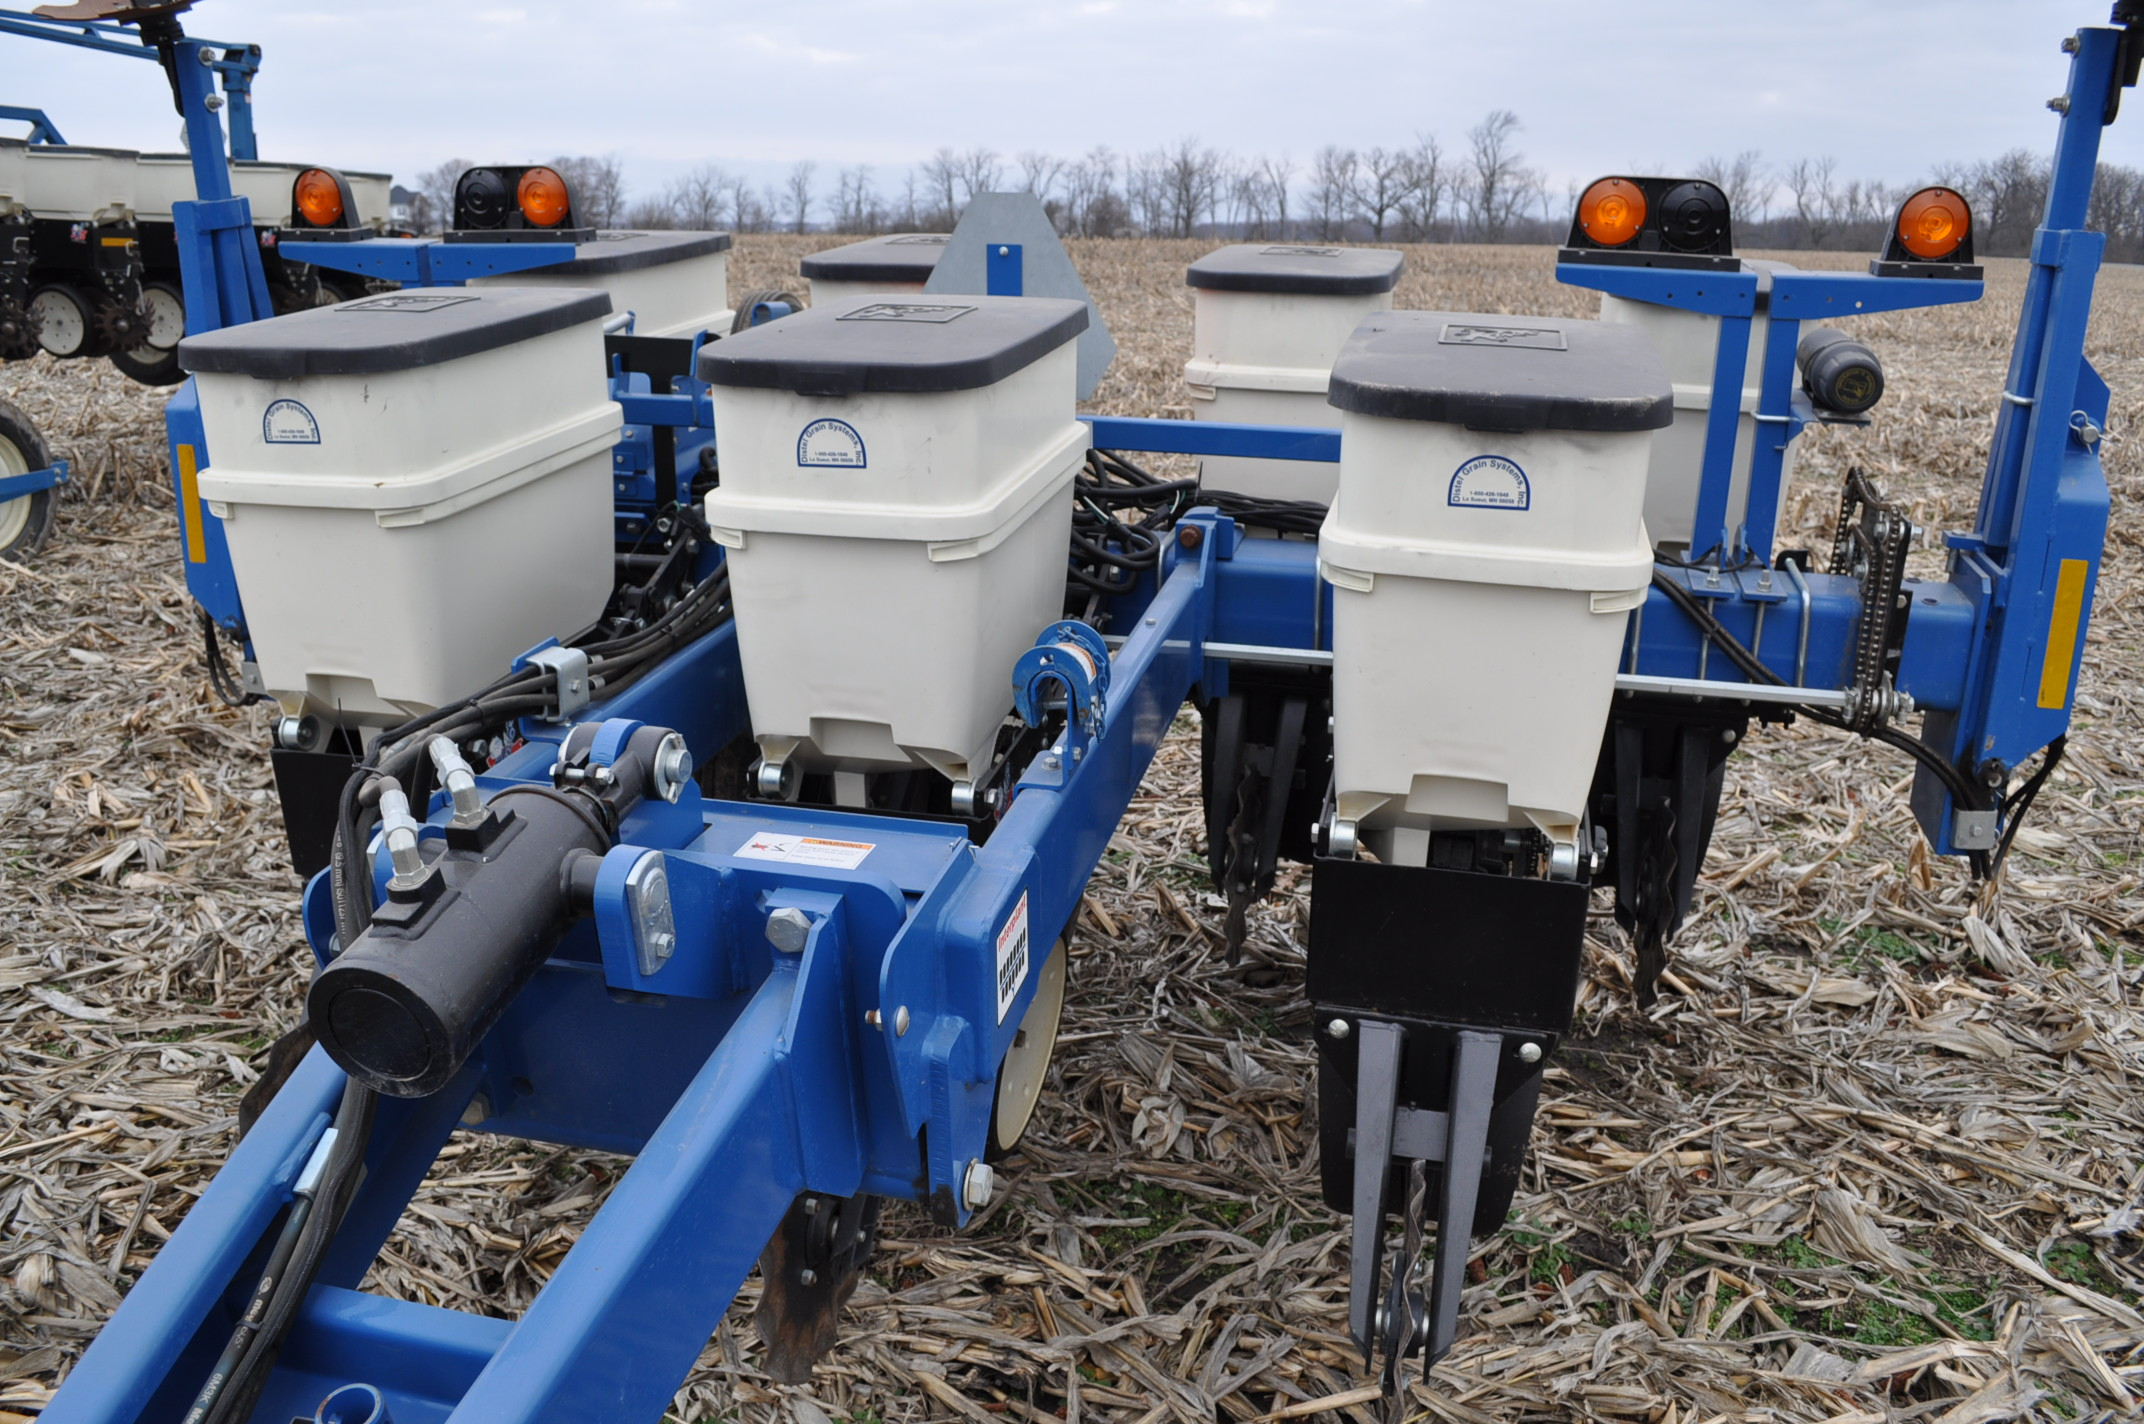 Kinze 3000 planter 4/7 planter, boxes, no-till, pull-type, ground drive, markers, rubber closing - Image 6 of 14